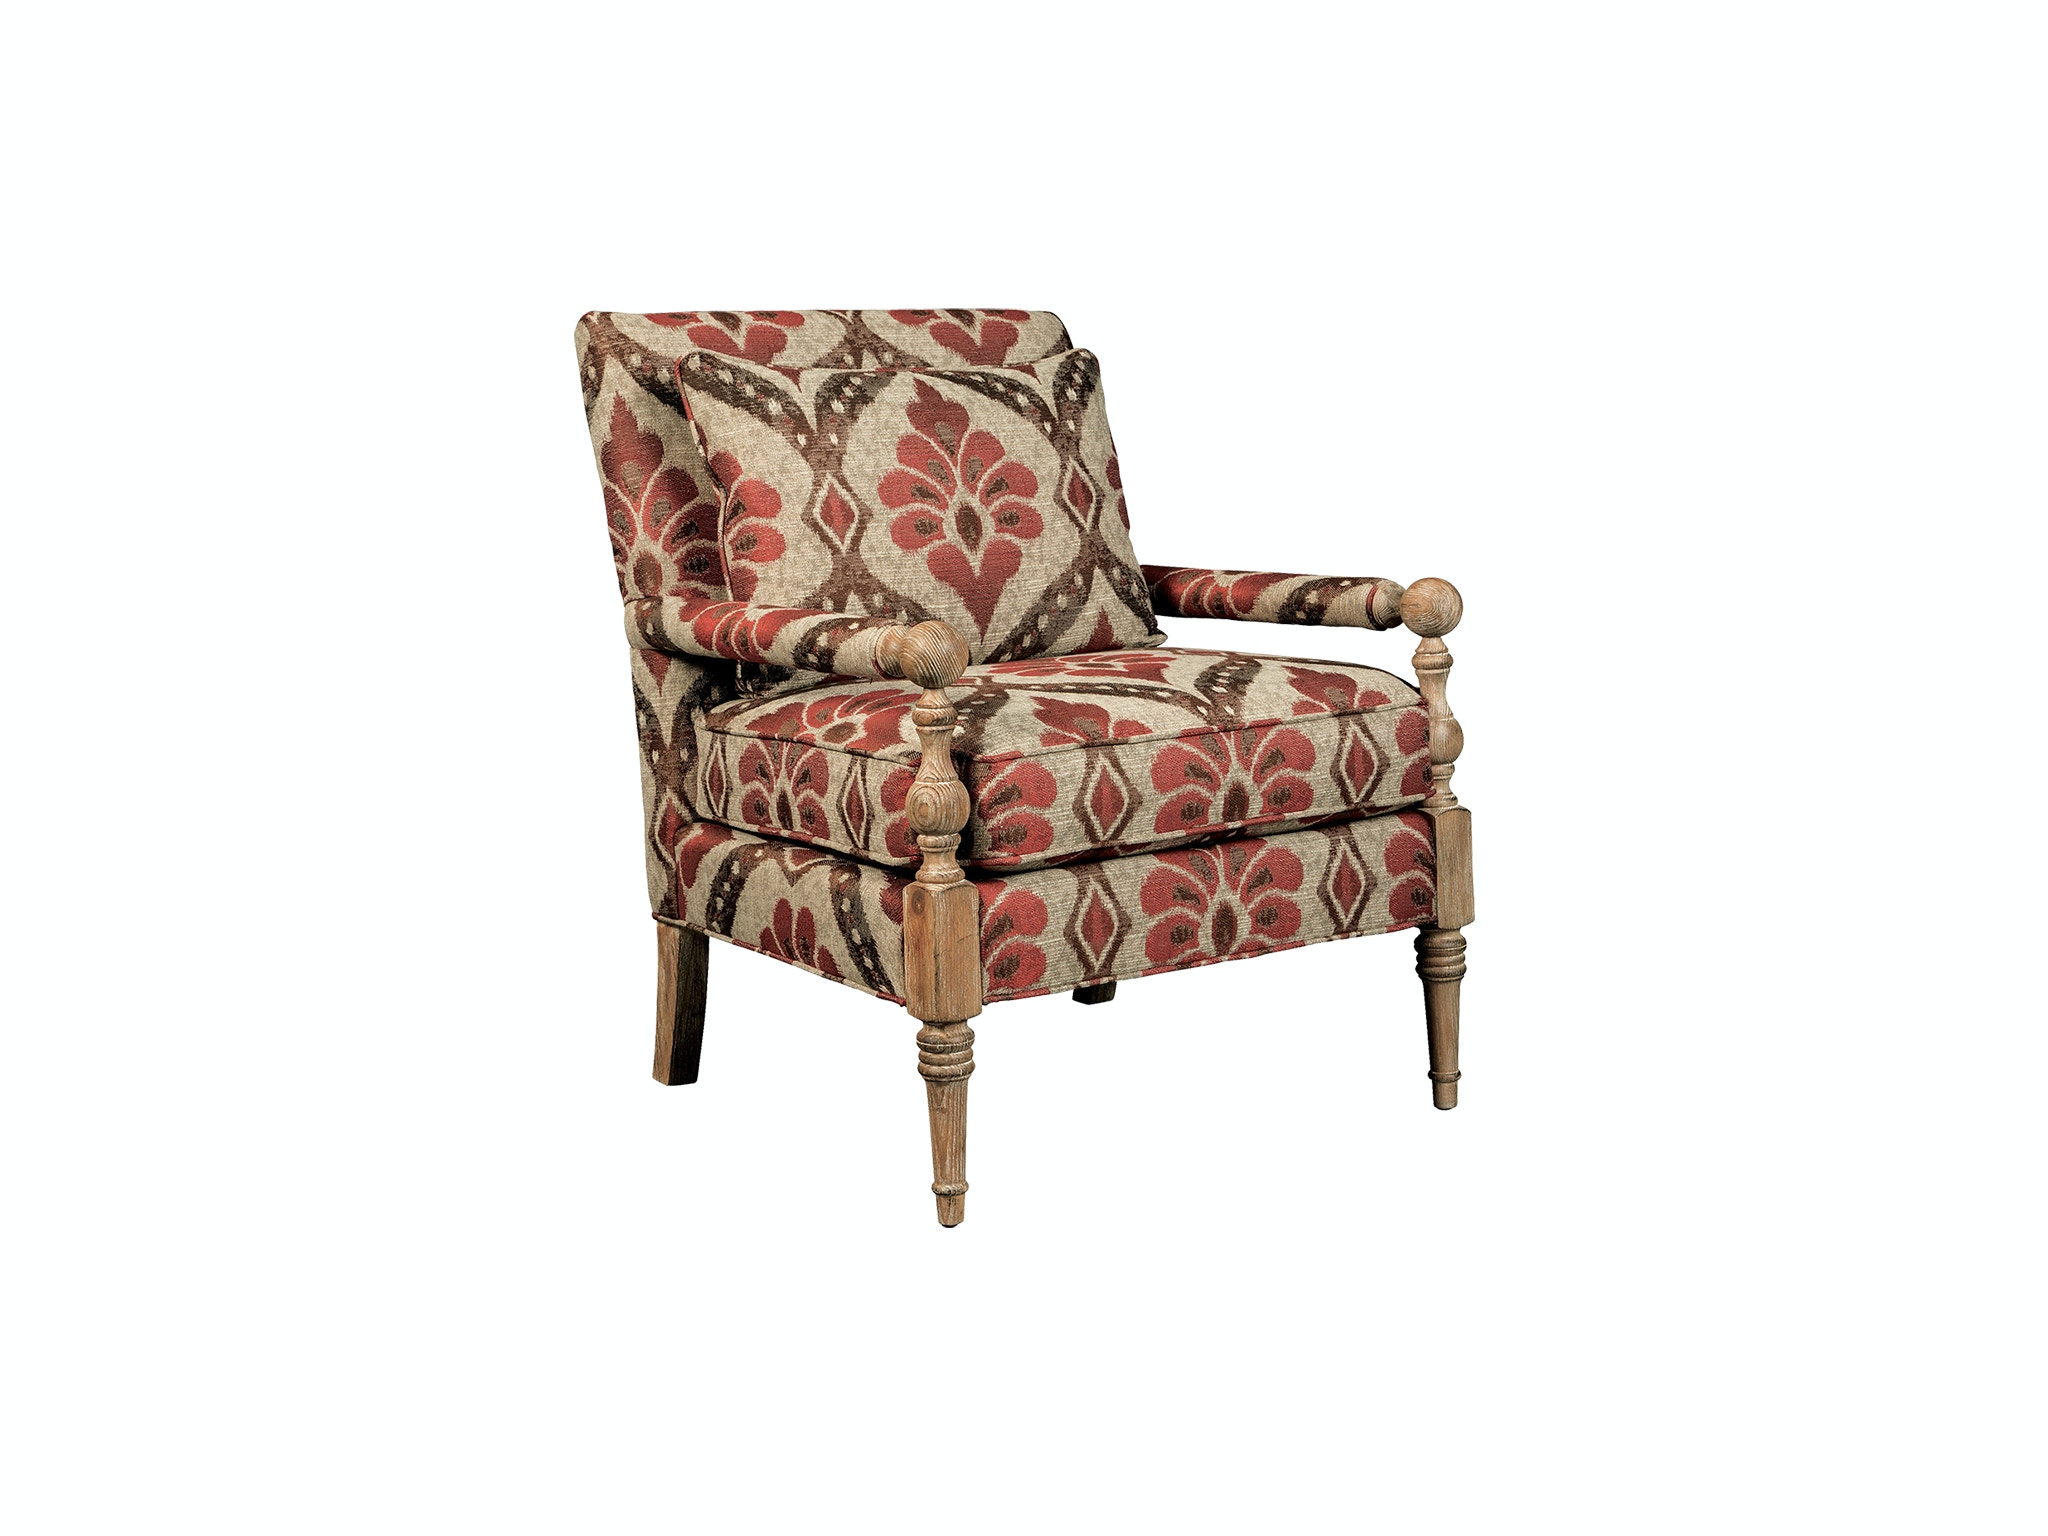 Rachael Ray By Craftmaster Chair R078910CL